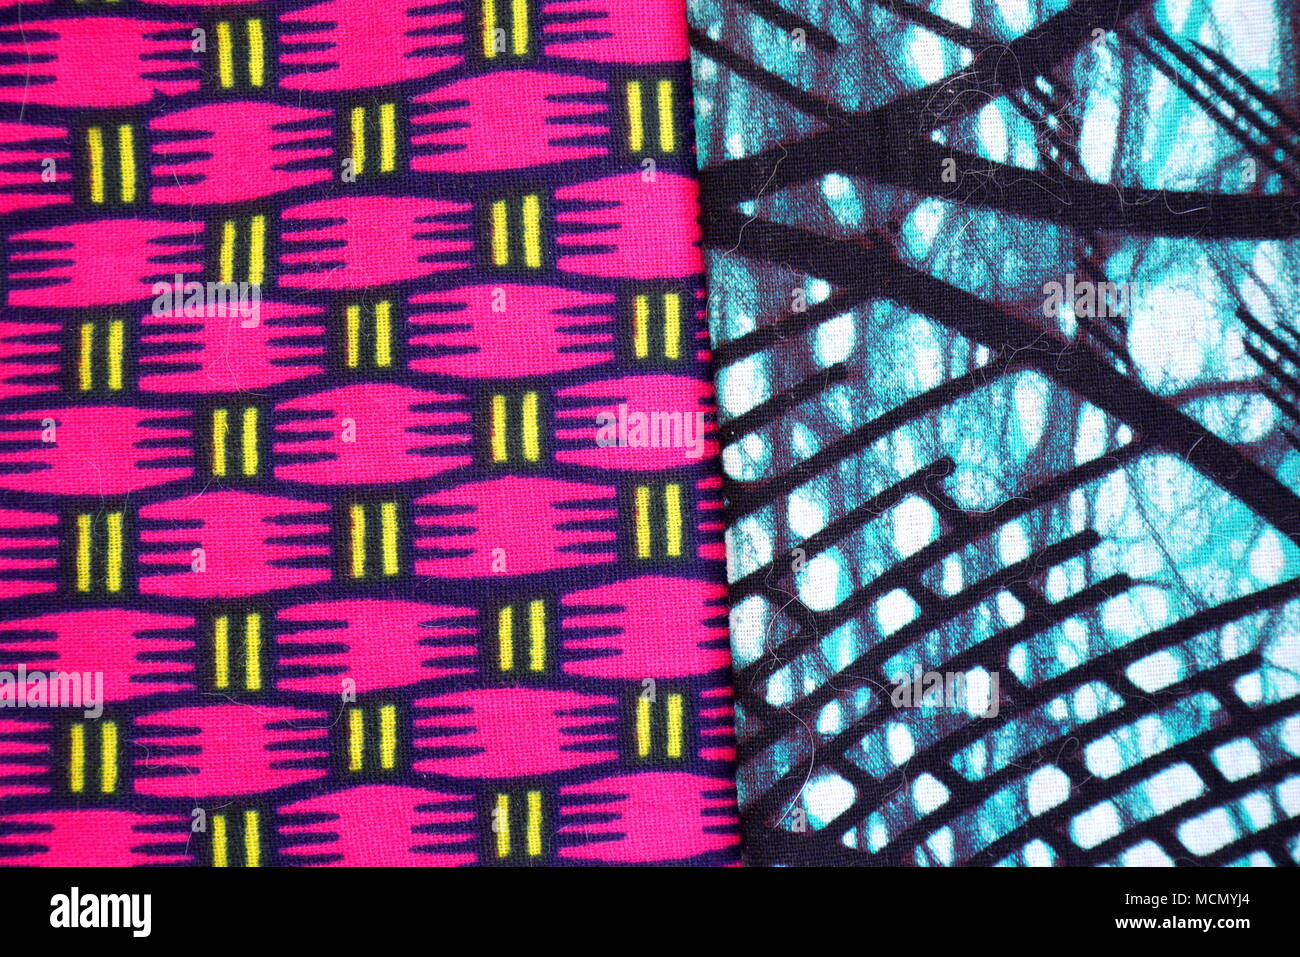 Tanzanian patterned kitenge fabric. The printing is done using a traditional batik technique. - Stock Image